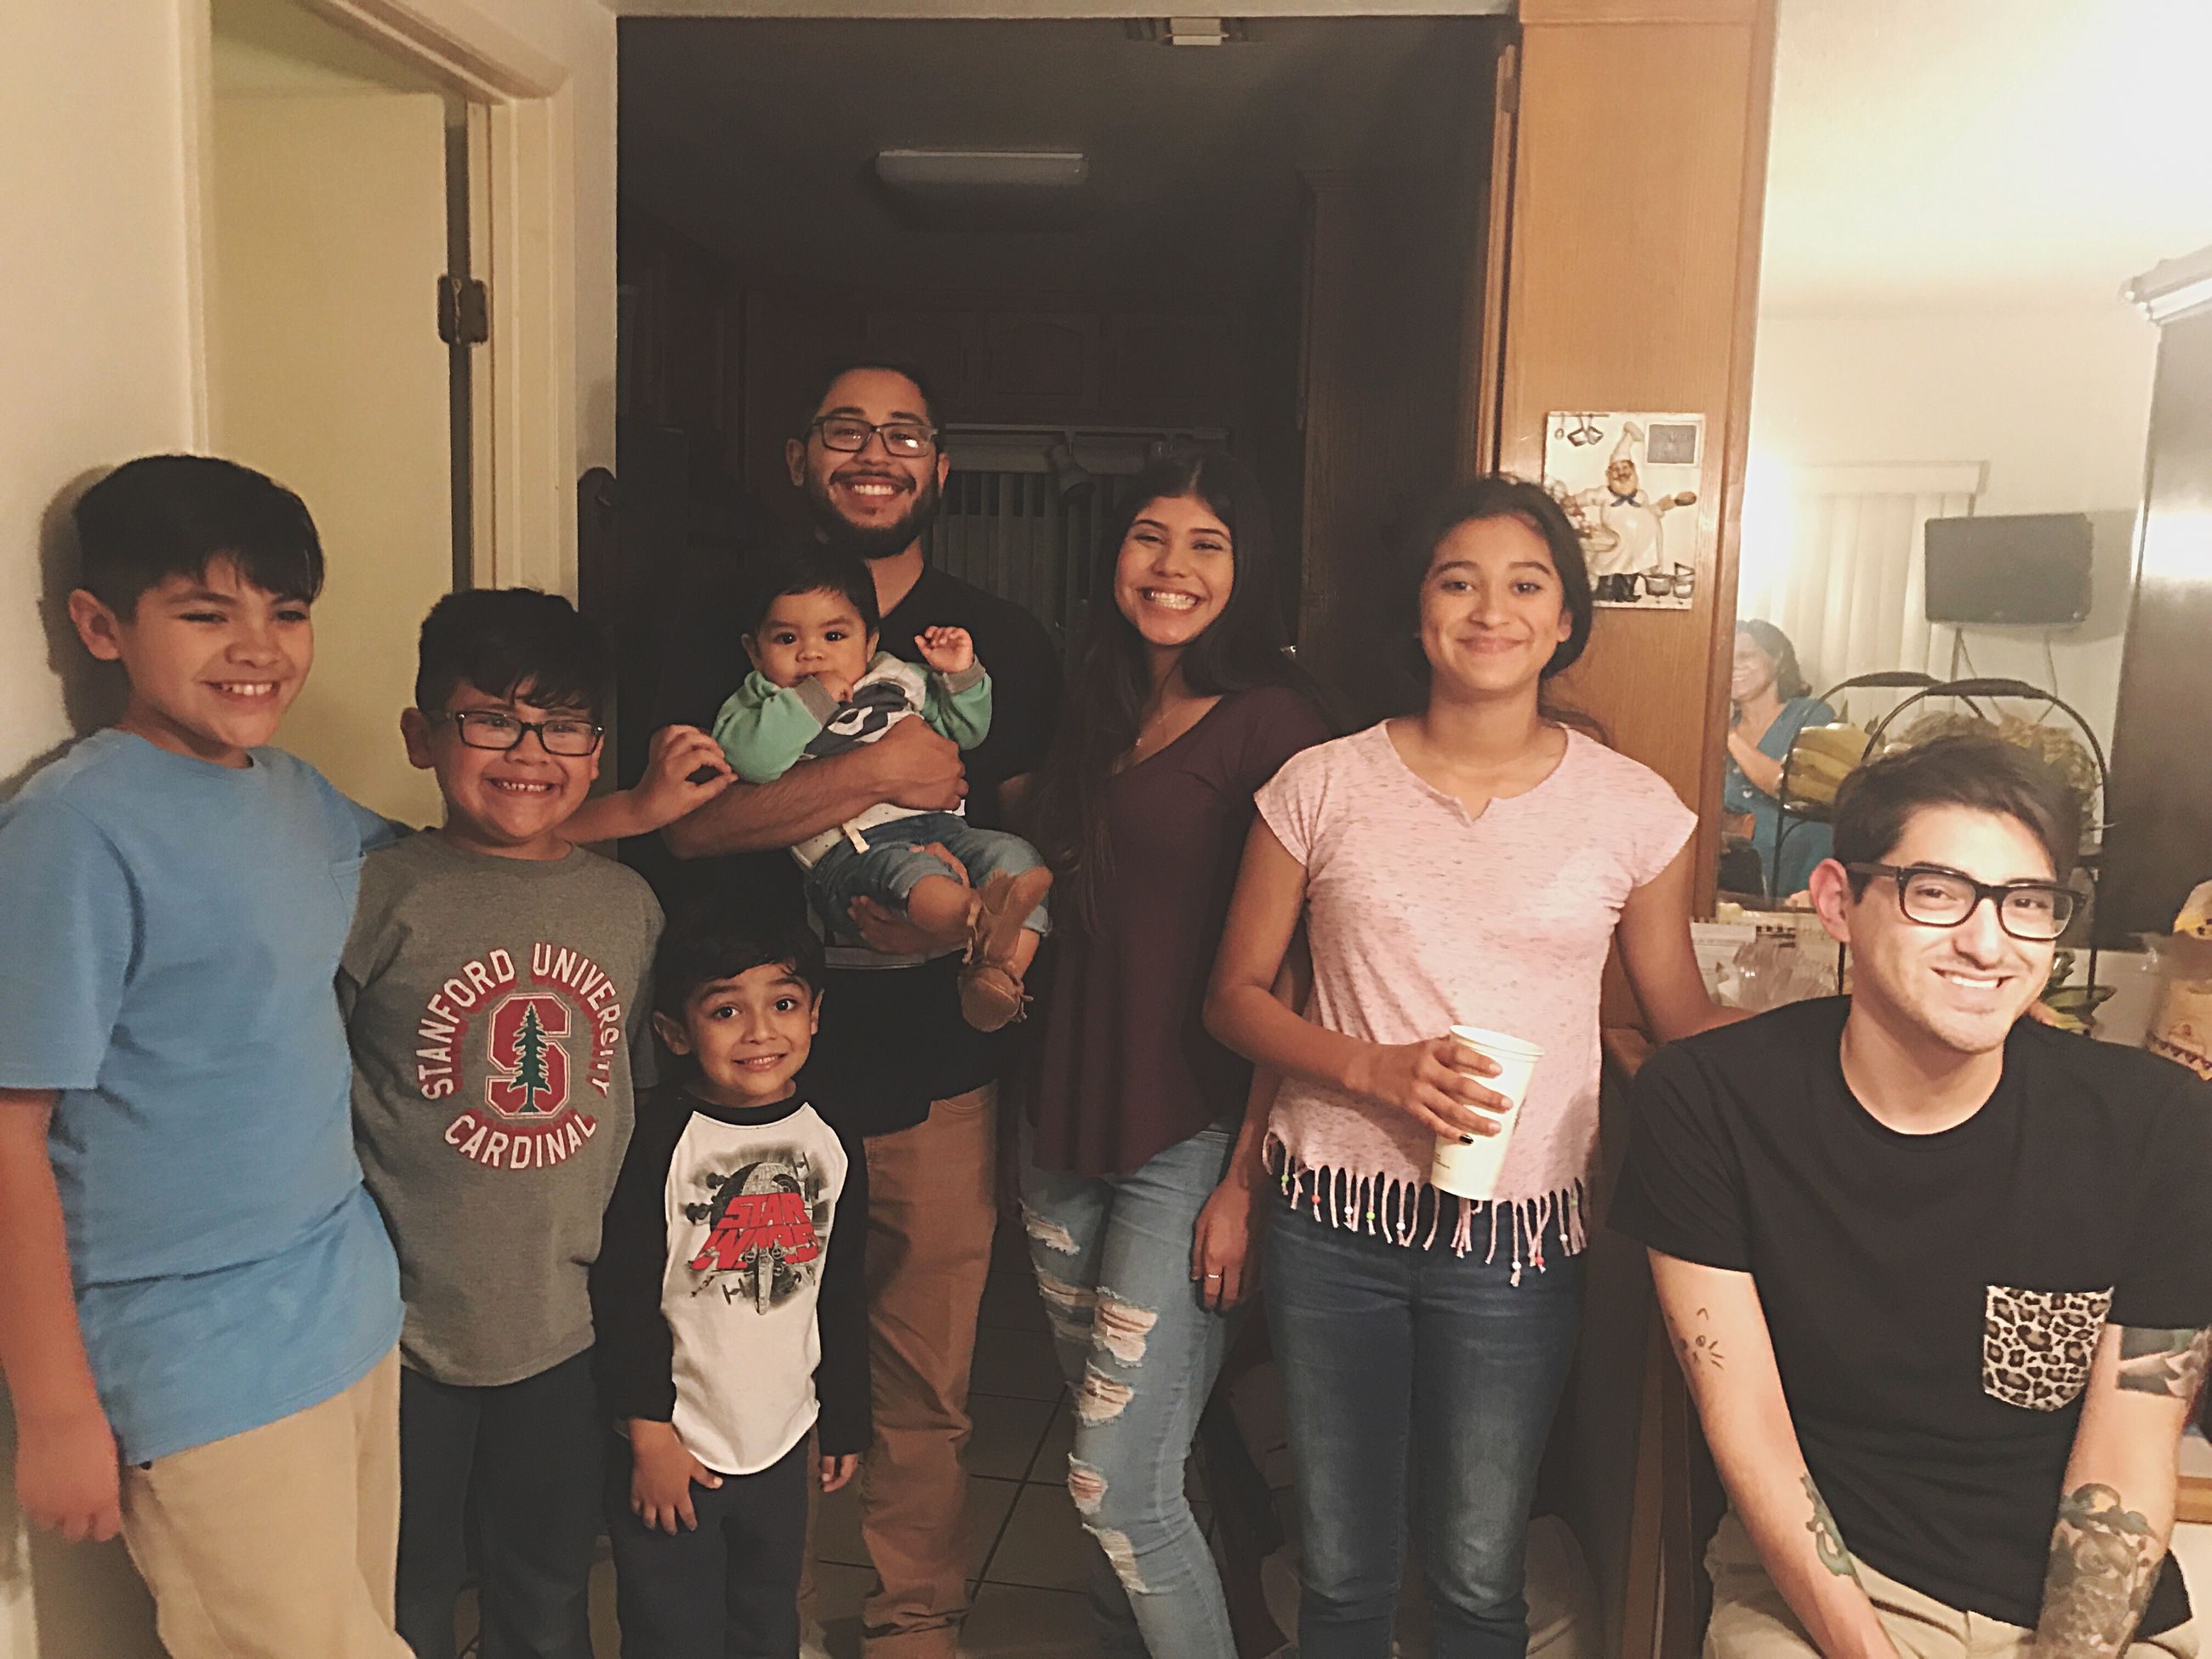 child, girls, boys, medium group of people, standing, looking at camera, portrait, togetherness, people, childhood, night, adult, domestic life, young women, young adult, happiness, indoors, smiling, men